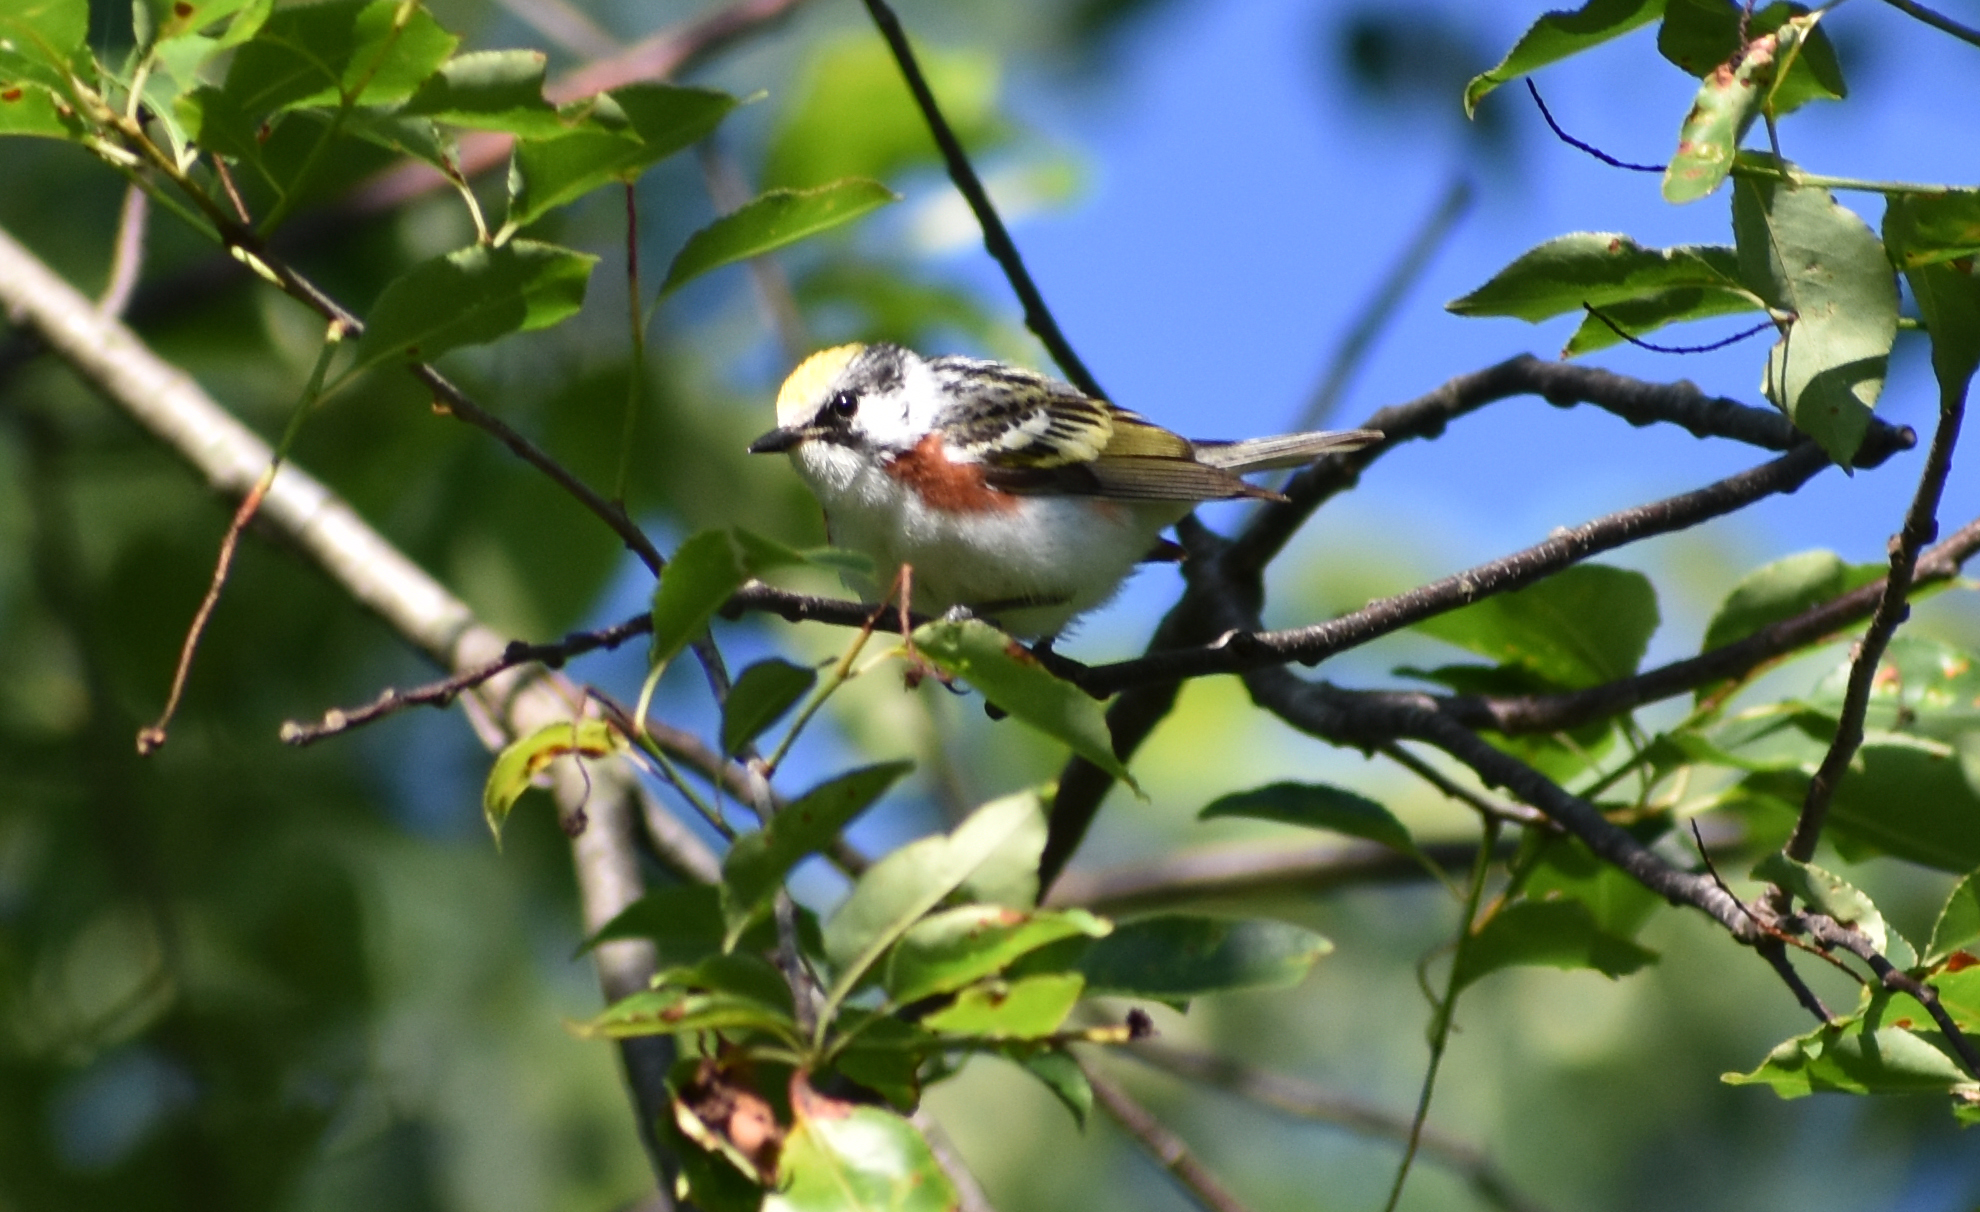 How to Attract Warblers